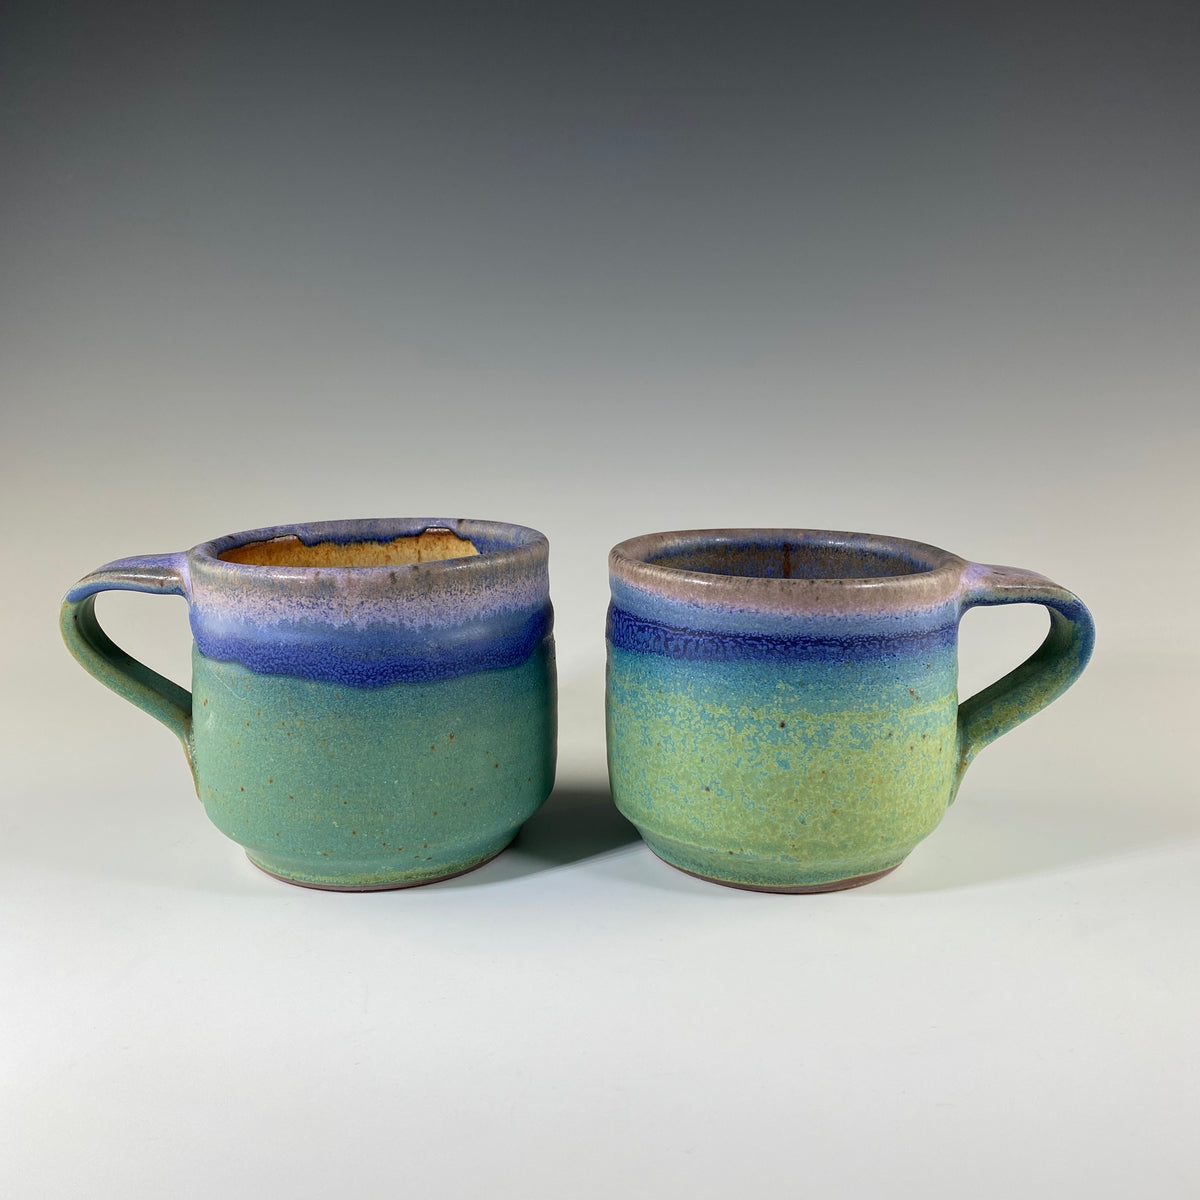 Mug in Turquoise & Lavender - Heart of the Home PA